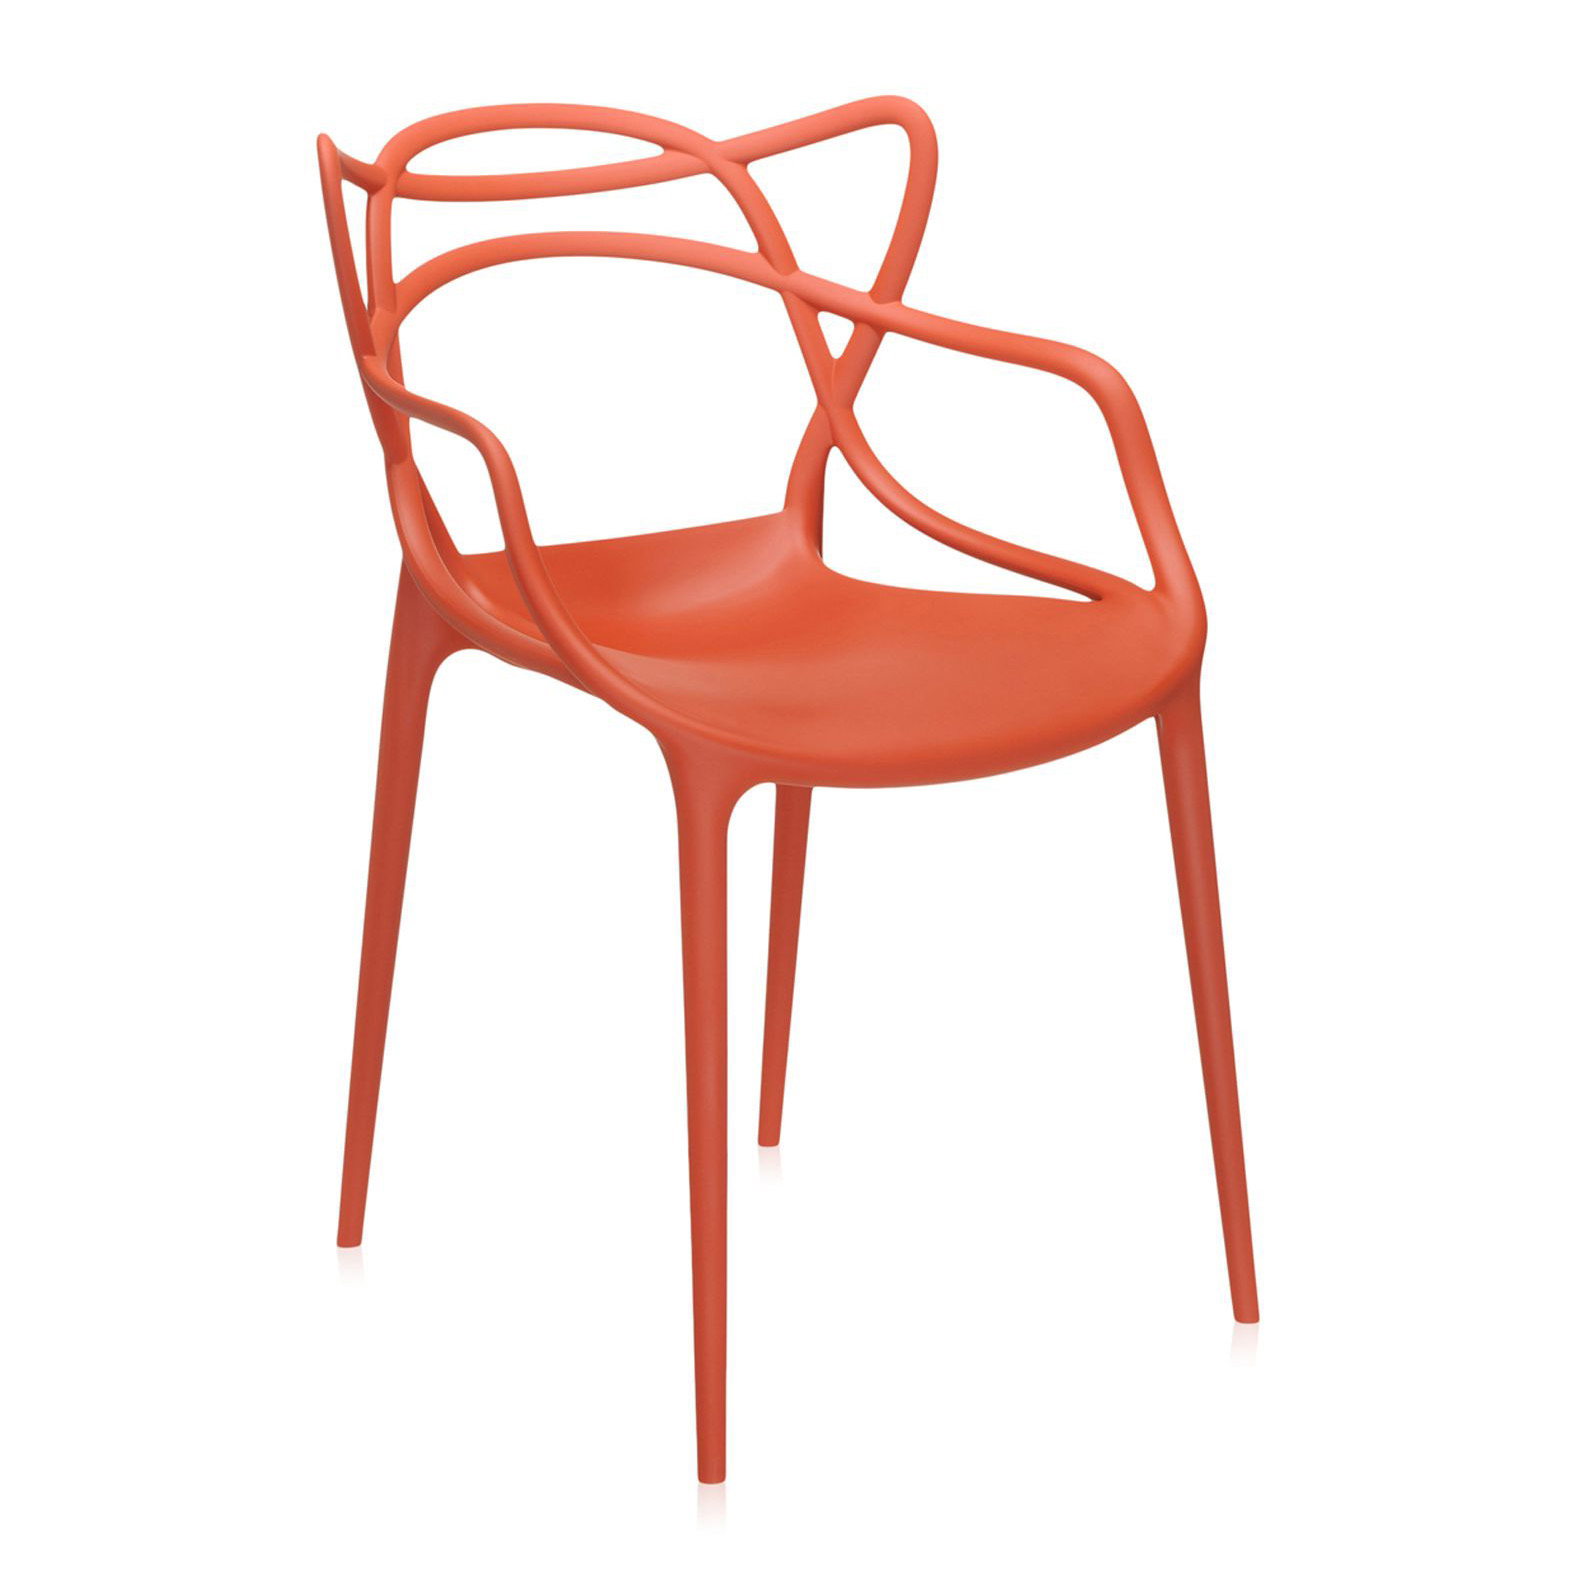 buy kartell masters chair  designed by philippe starck  eugeni  -  kartell masters chair  designed by philippe starck  eugeni quittlet